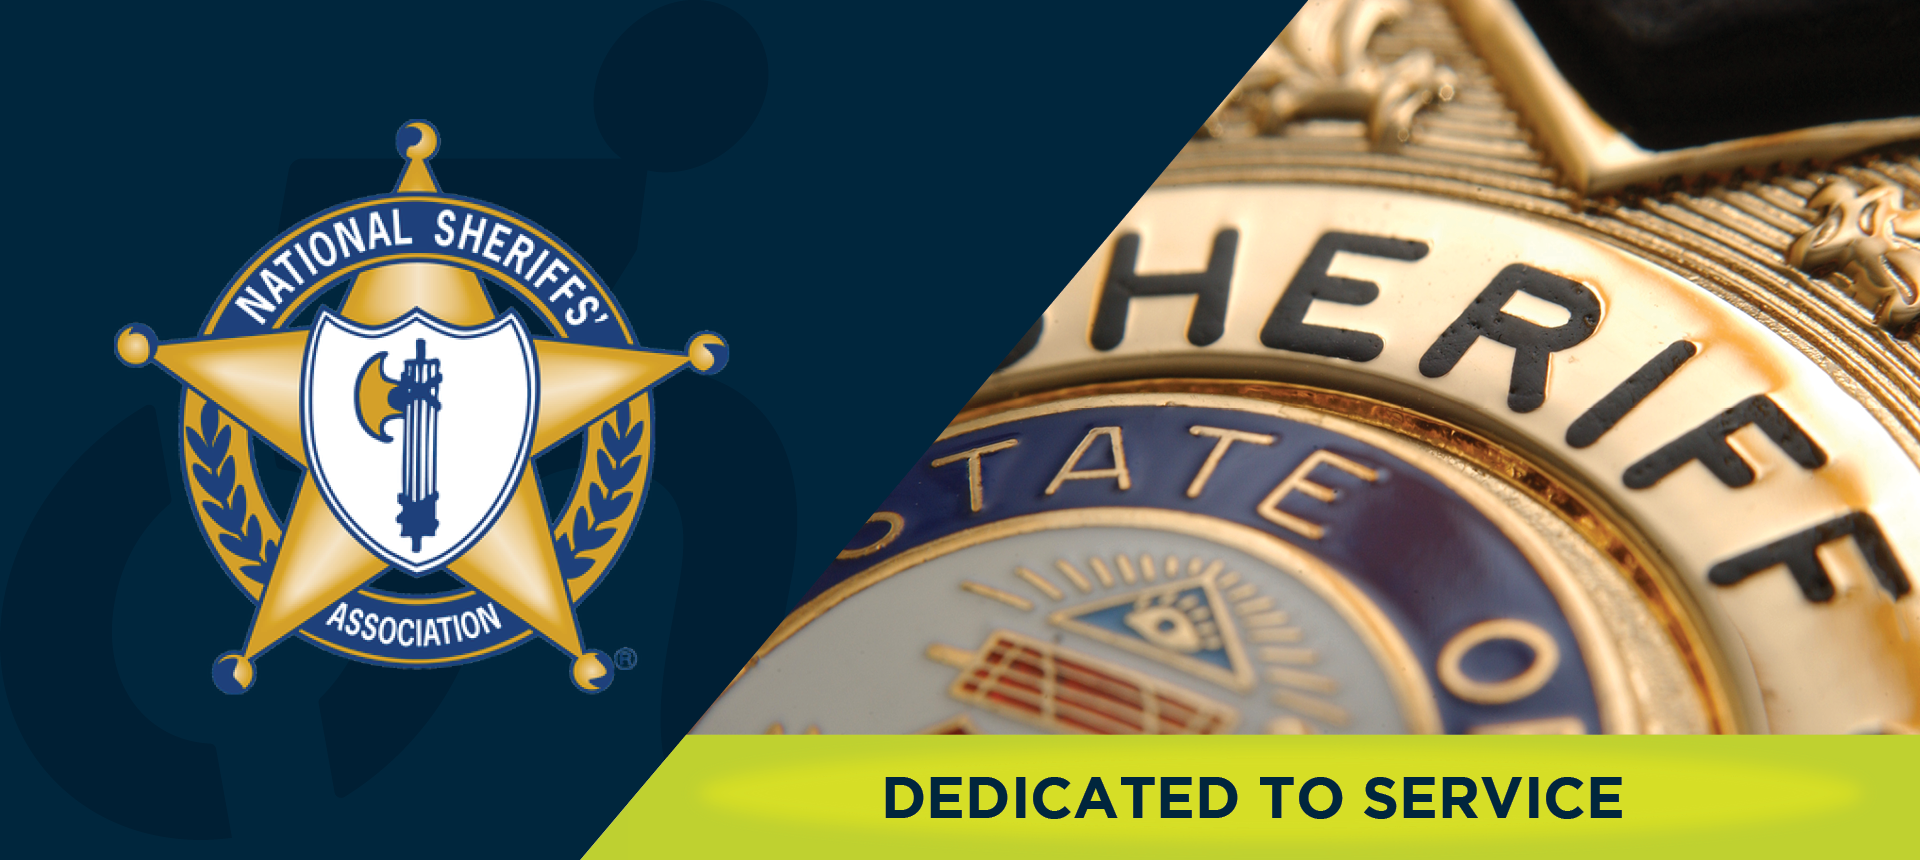 On left side of image, the American Sheriff's Association logo. On right side of the image, a close up image of a Sheriff's badge. Underneath, the image reads: DEDICATED TO SERVICE